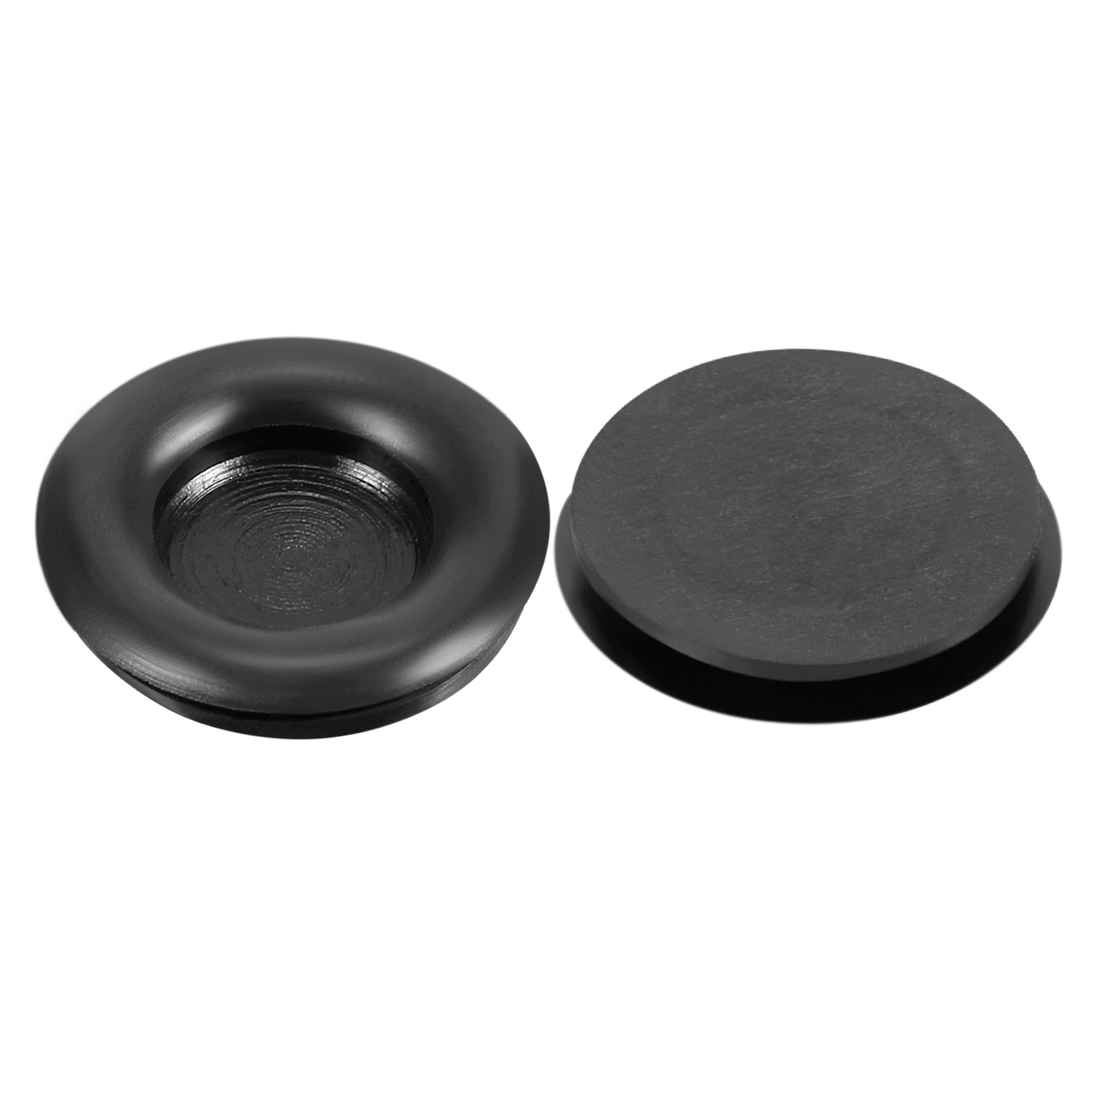 Wire Protector Oil Resistant Rubber Grommets 14mm Mounting Dia 30Pcs Black